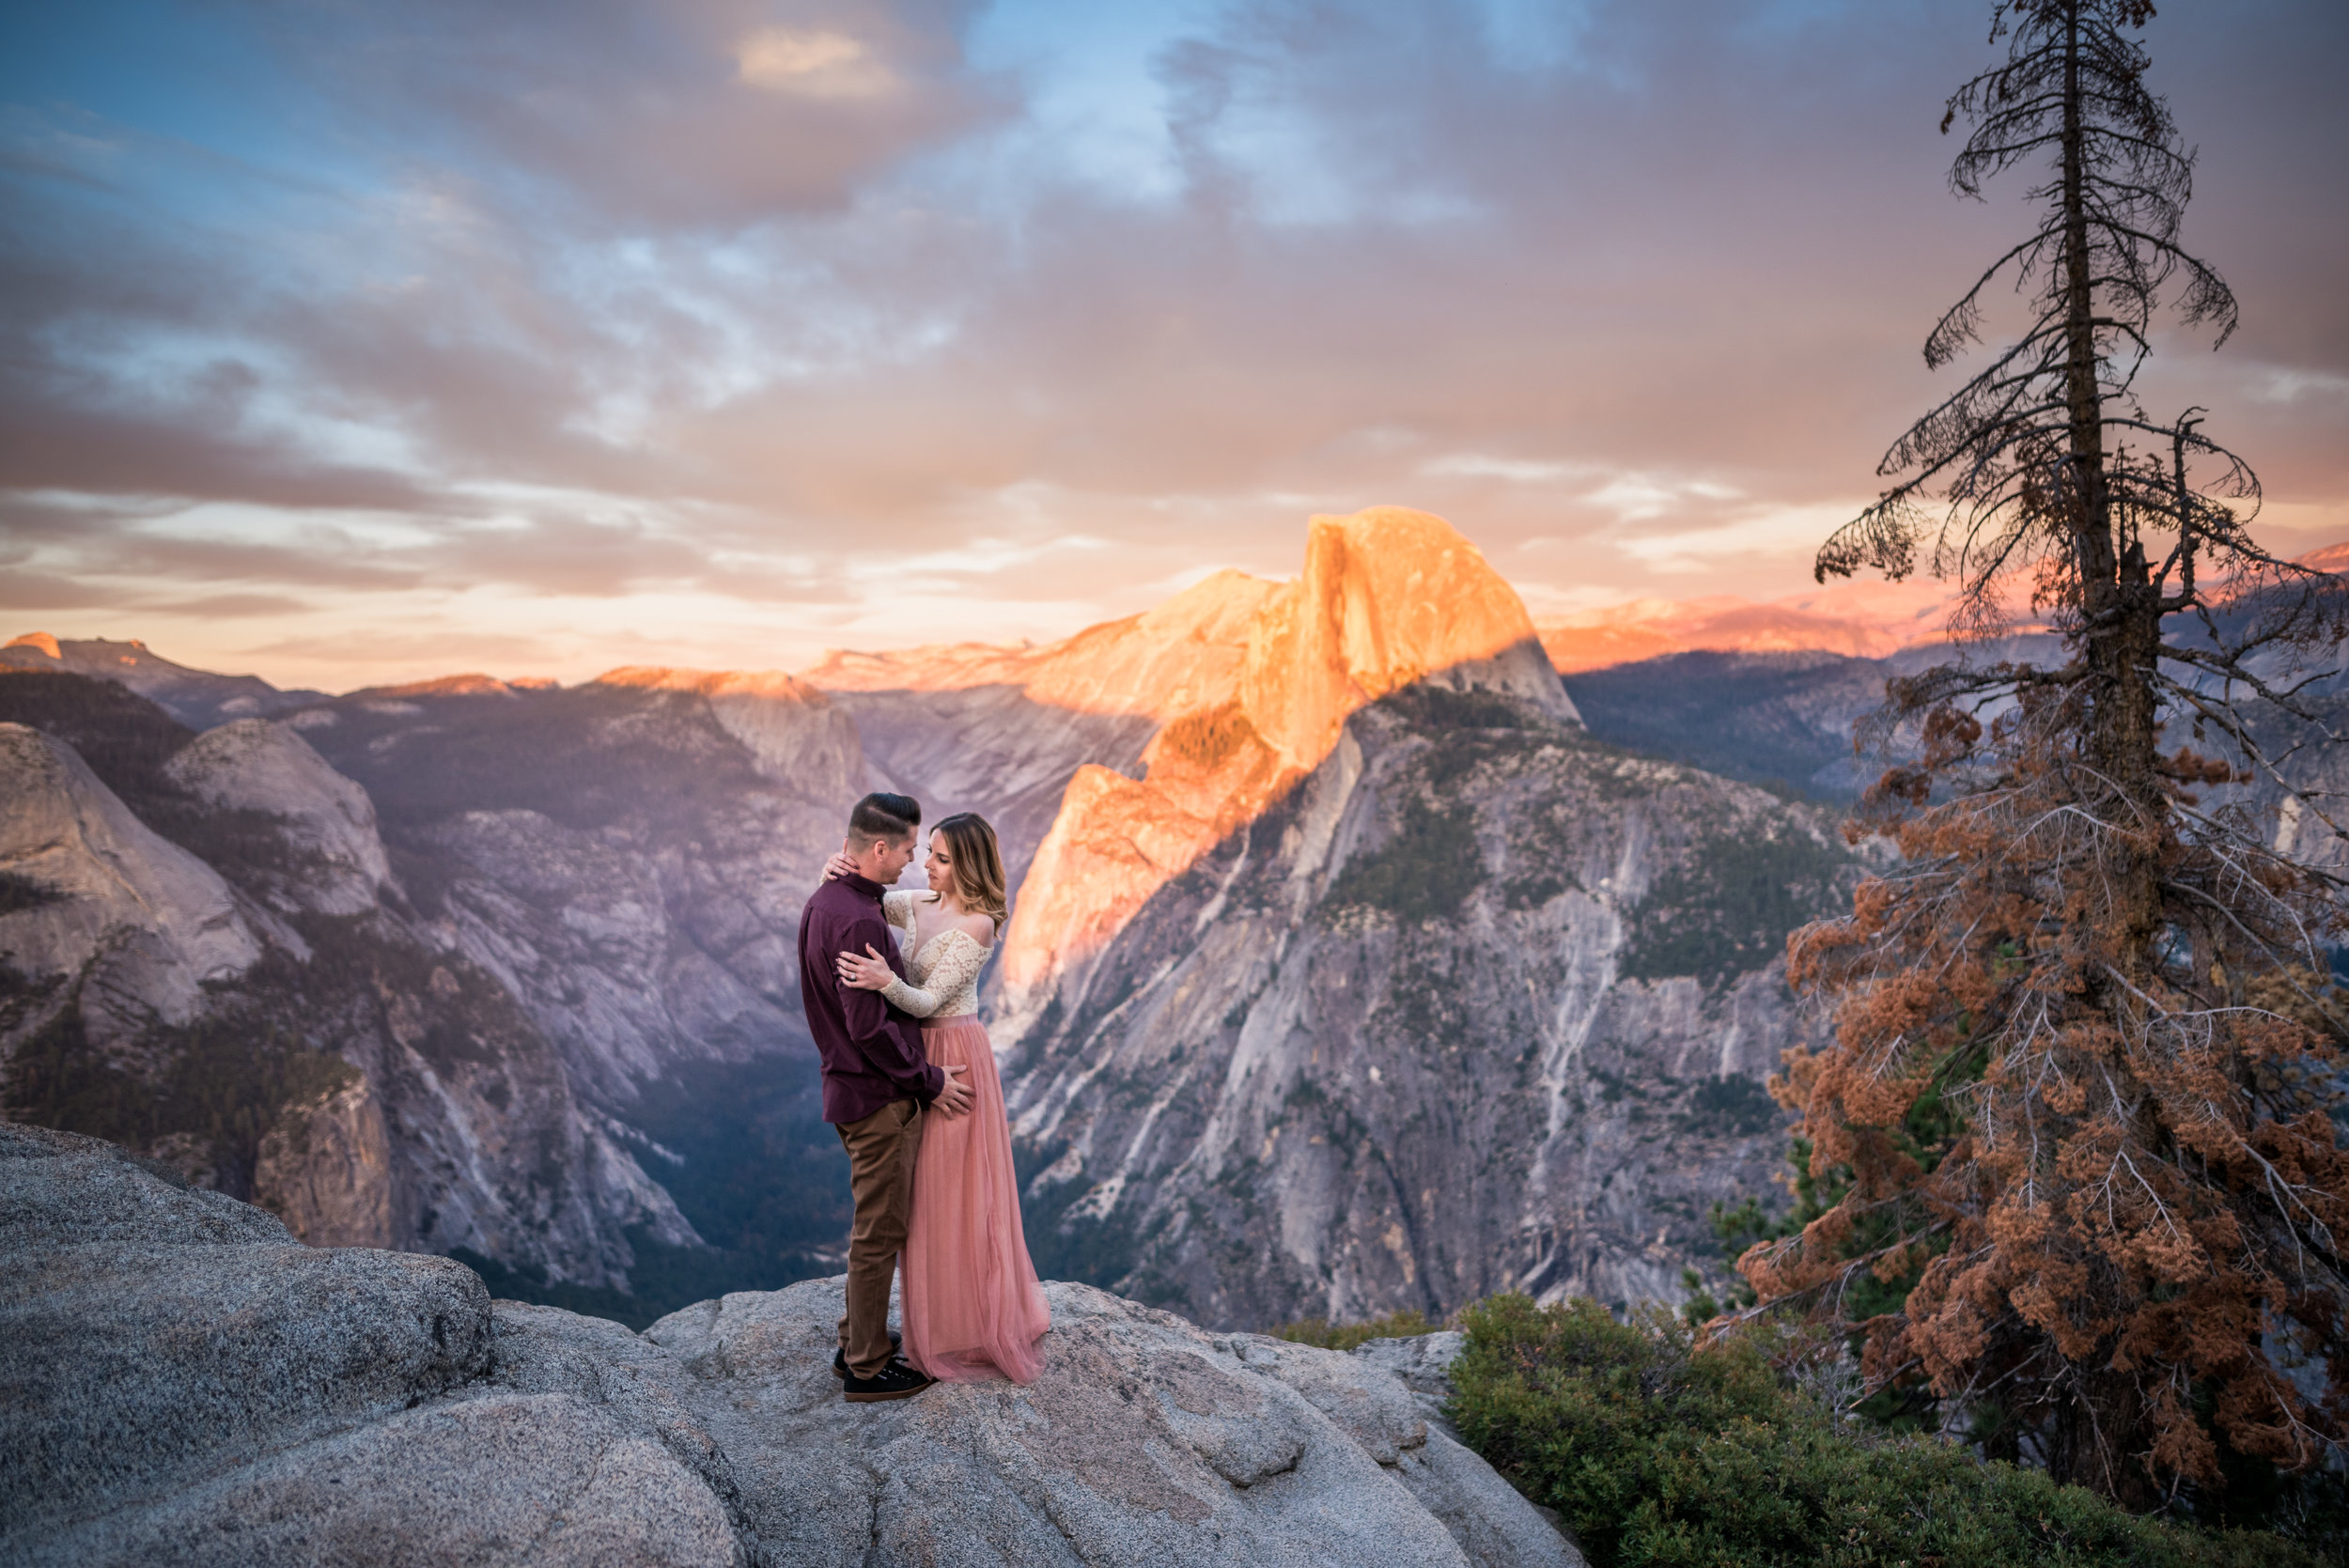 Yosemite National Park - (Yosemite, CA) Yosemite is truly breathtaking. With  towering rock faces, beautiful foliage and sunsets so perfect they seem fake, Yosemite provides an extremely beautiful background for your photos. Let's go!